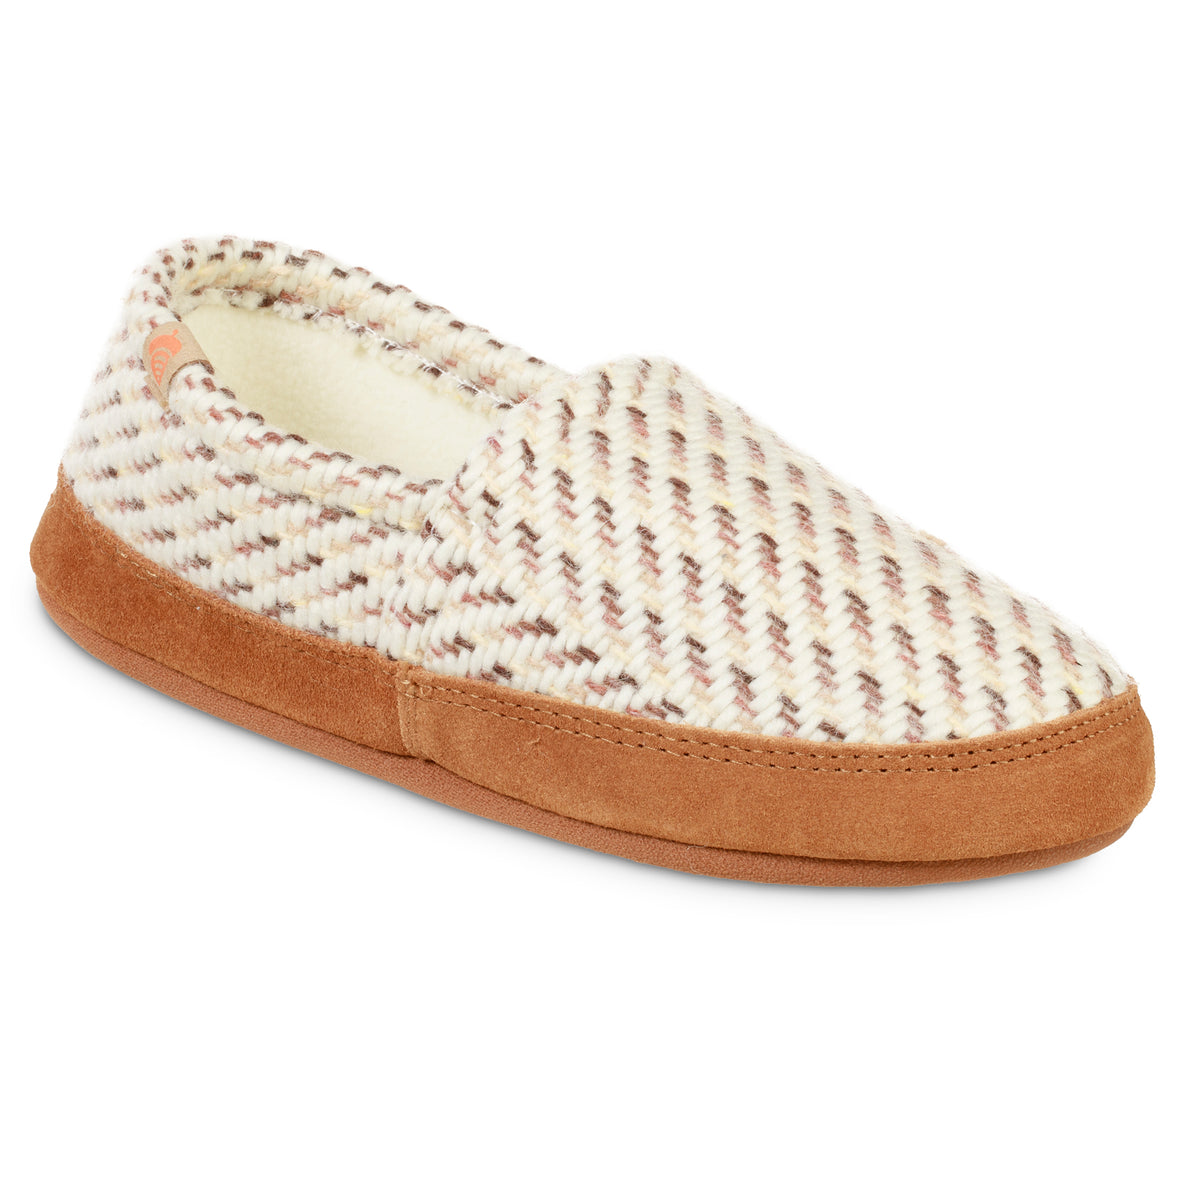 Acorn Women's Moccassin Slippers